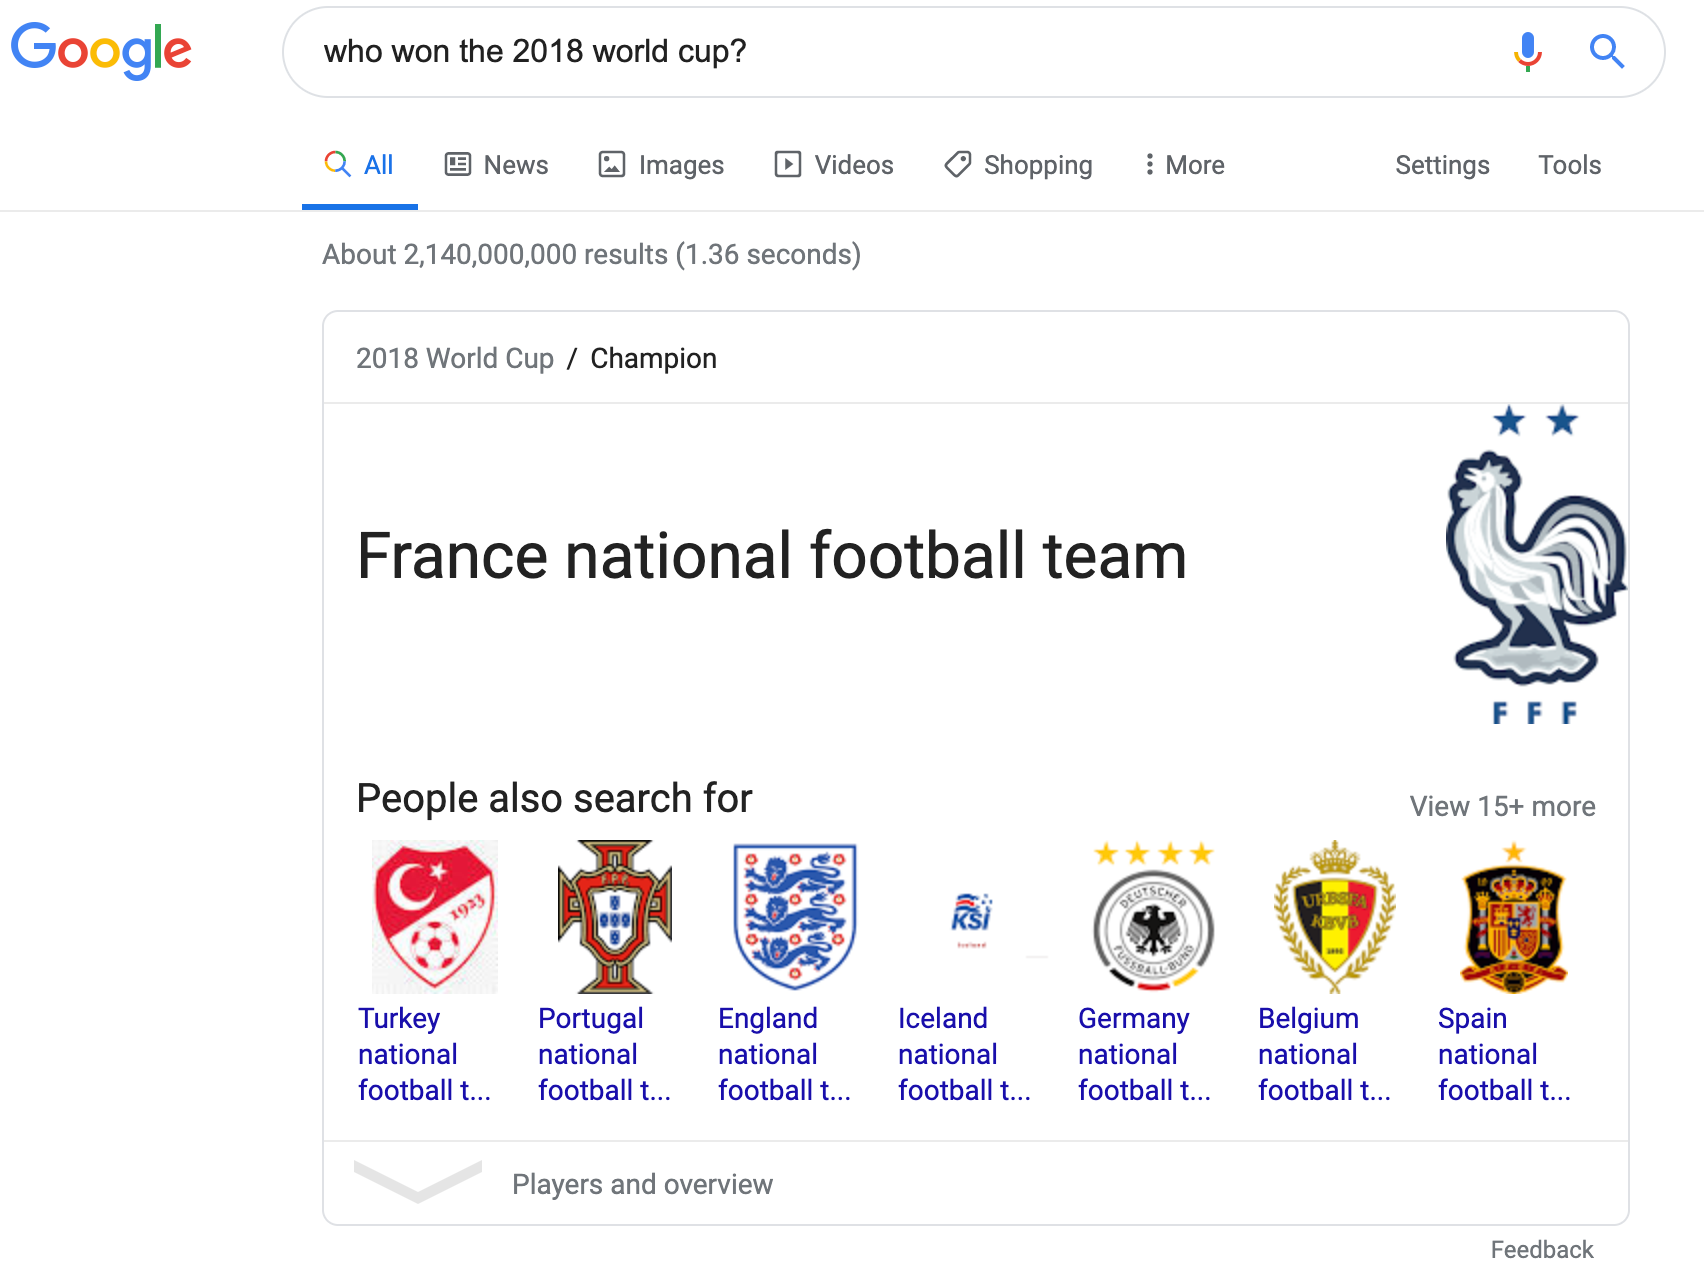 who won the 2018 world cup  - Google Search